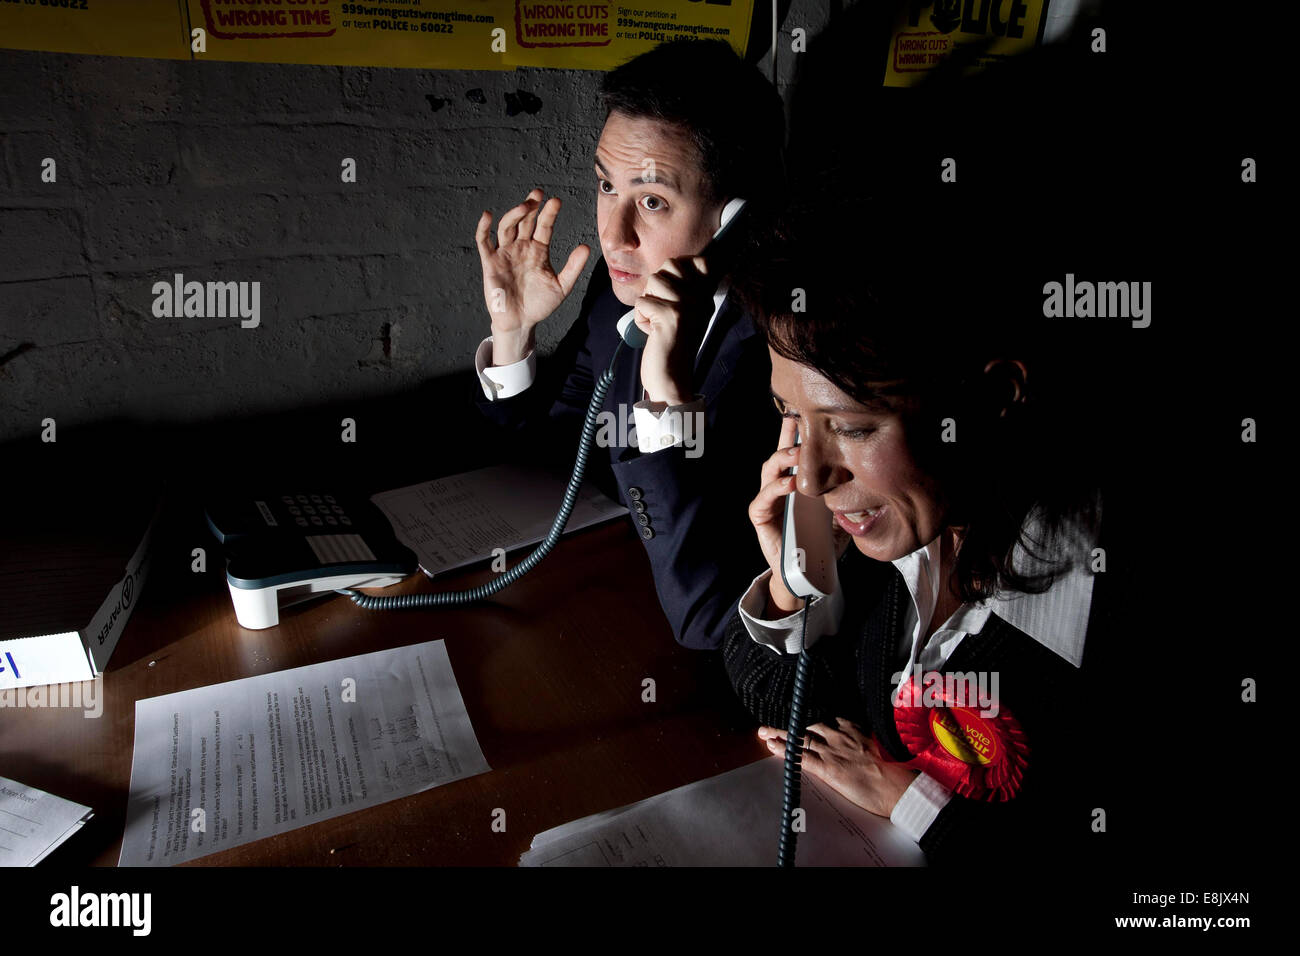 Ed Miliband visits Biz Space in Delph to lend his support to Labour candidate Debbie Abrahams - Stock Image